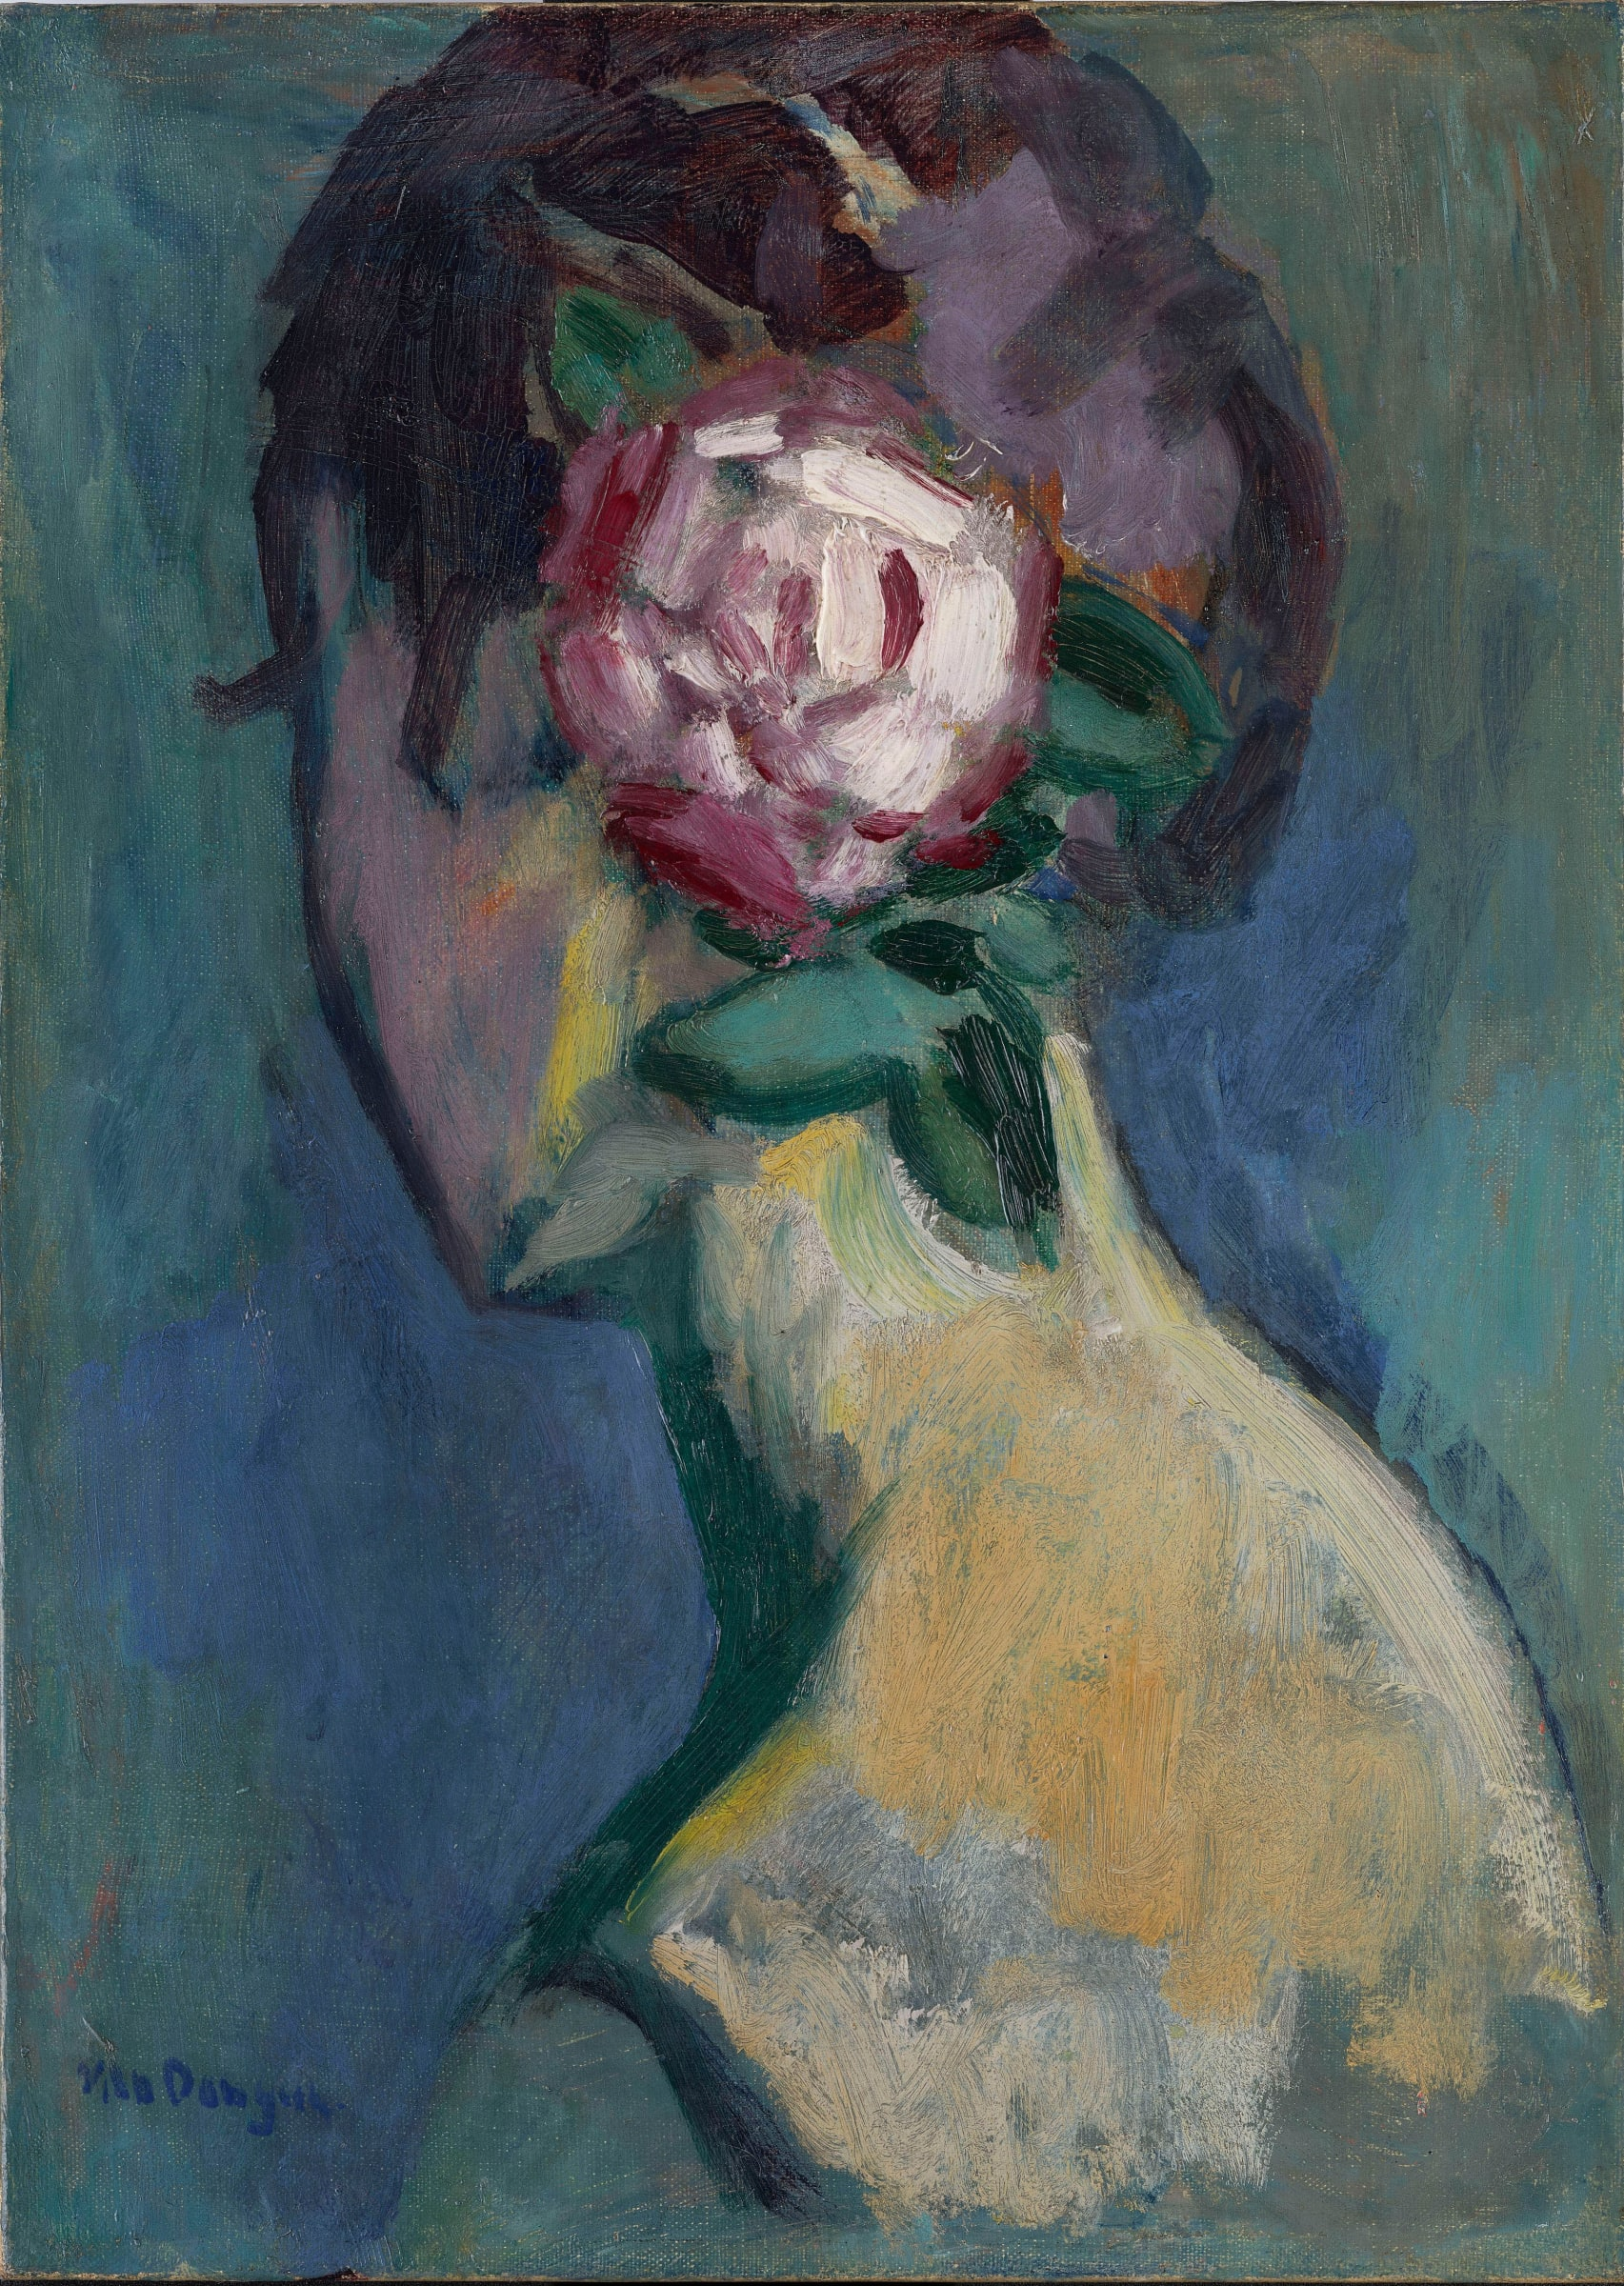 "<span class=""link fancybox-details-link""><a href=""/artists/79-kees-van-dongen/works/9447-kees-van-dongen-femme-a-la-rose-c.1925/"">View Detail Page</a></span><div class=""artist""><span class=""artist""><strong>Kees Van Dongen</strong></span></div>